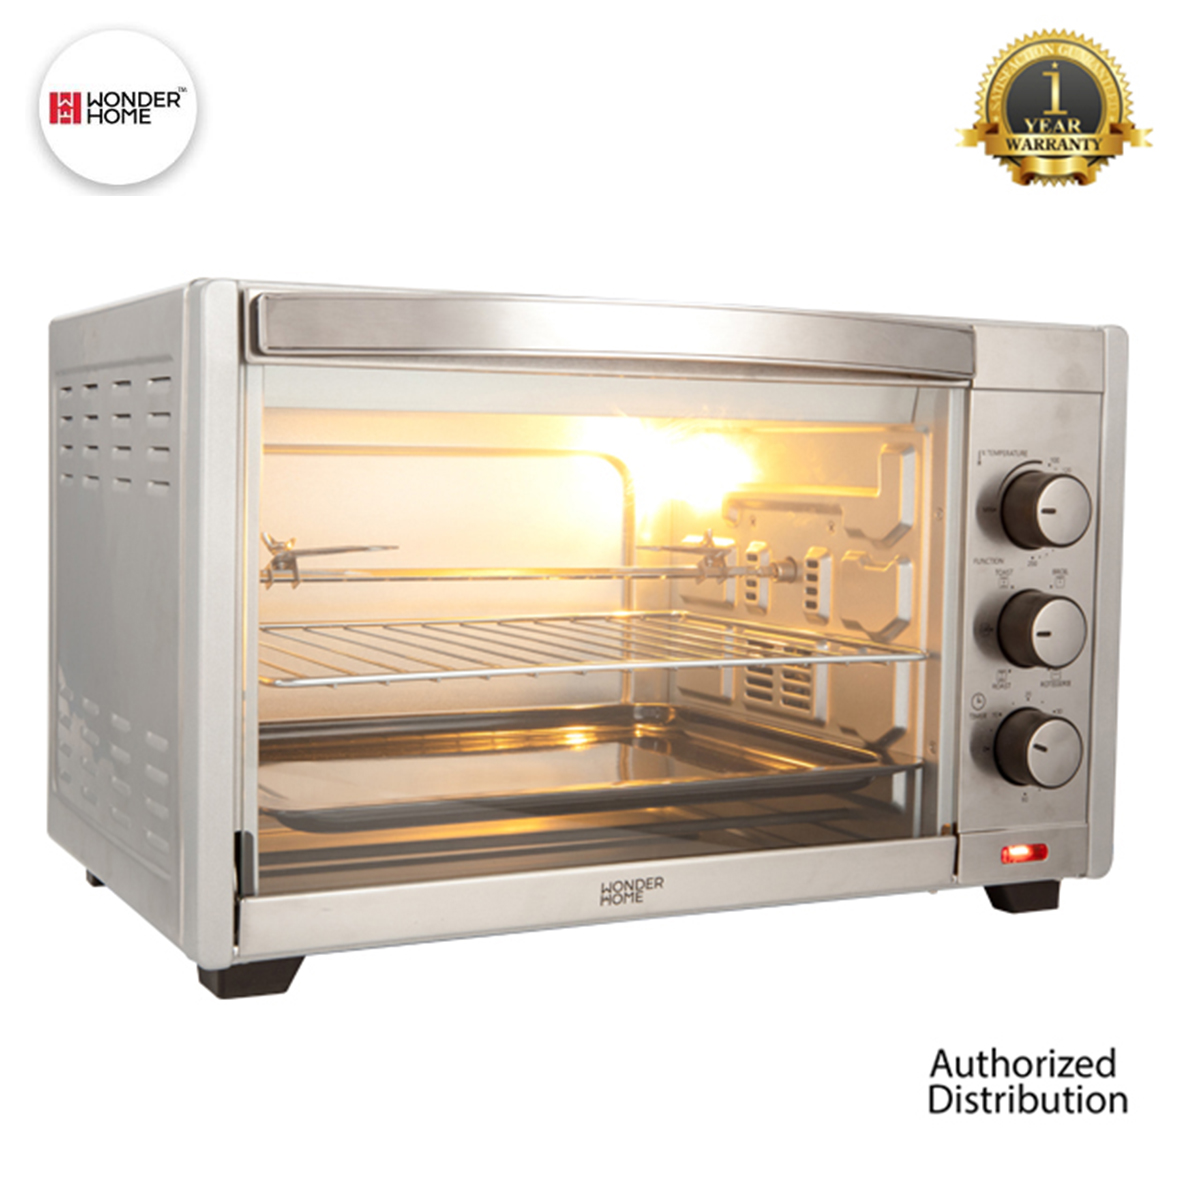 WONDER HOME Stainless Steel Electric Oven 35 Liter 1600W (WH-O-35)